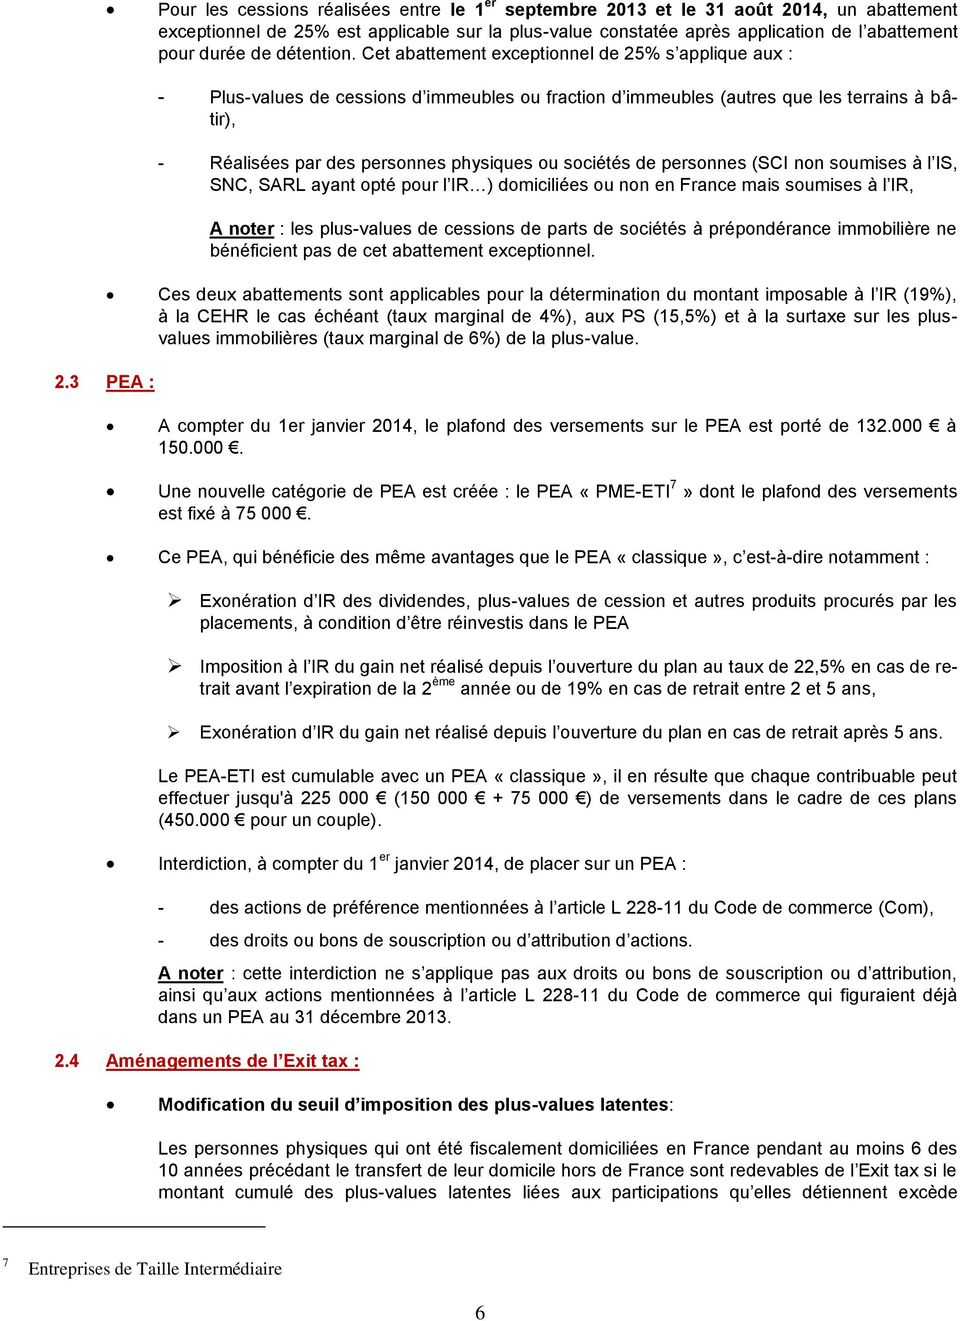 Cet abattement exceptionnel de 25% s applique aux : - Plus-values de cessions d immeubles ou fraction d immeubles (autres que les terrains à bâtir), - Réalisées par des personnes physiques ou